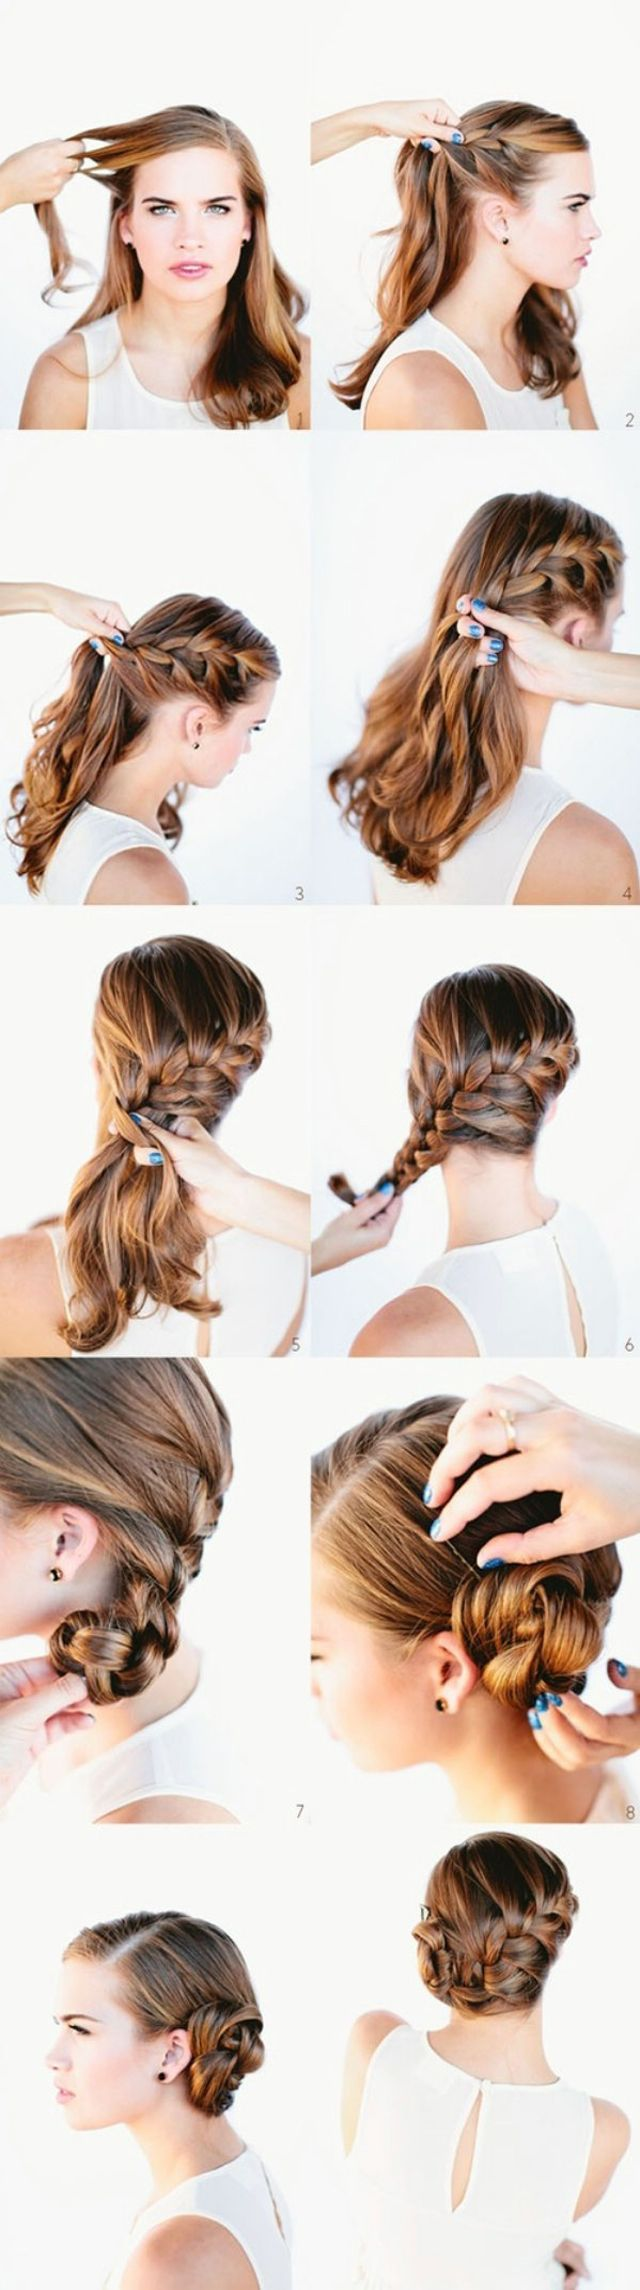 Cute Hairstyles DIY #hairtutorial more hair ideas: http://www.rpgshow.com/officialblog/